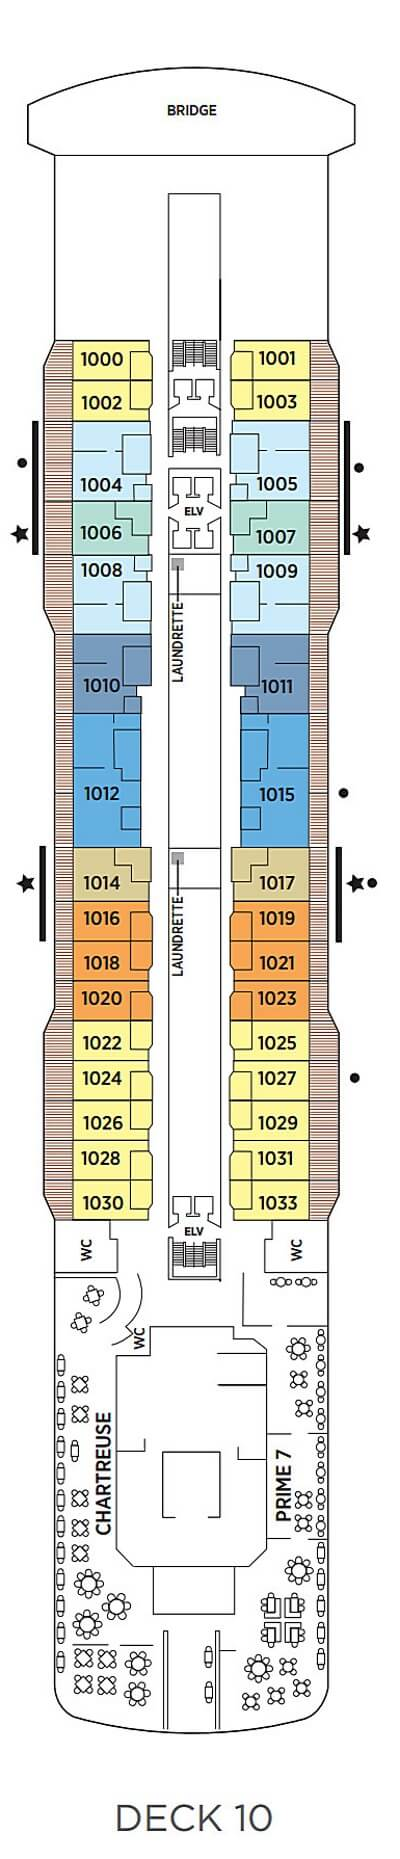 Seven Seas Explorer Deck 10 layout